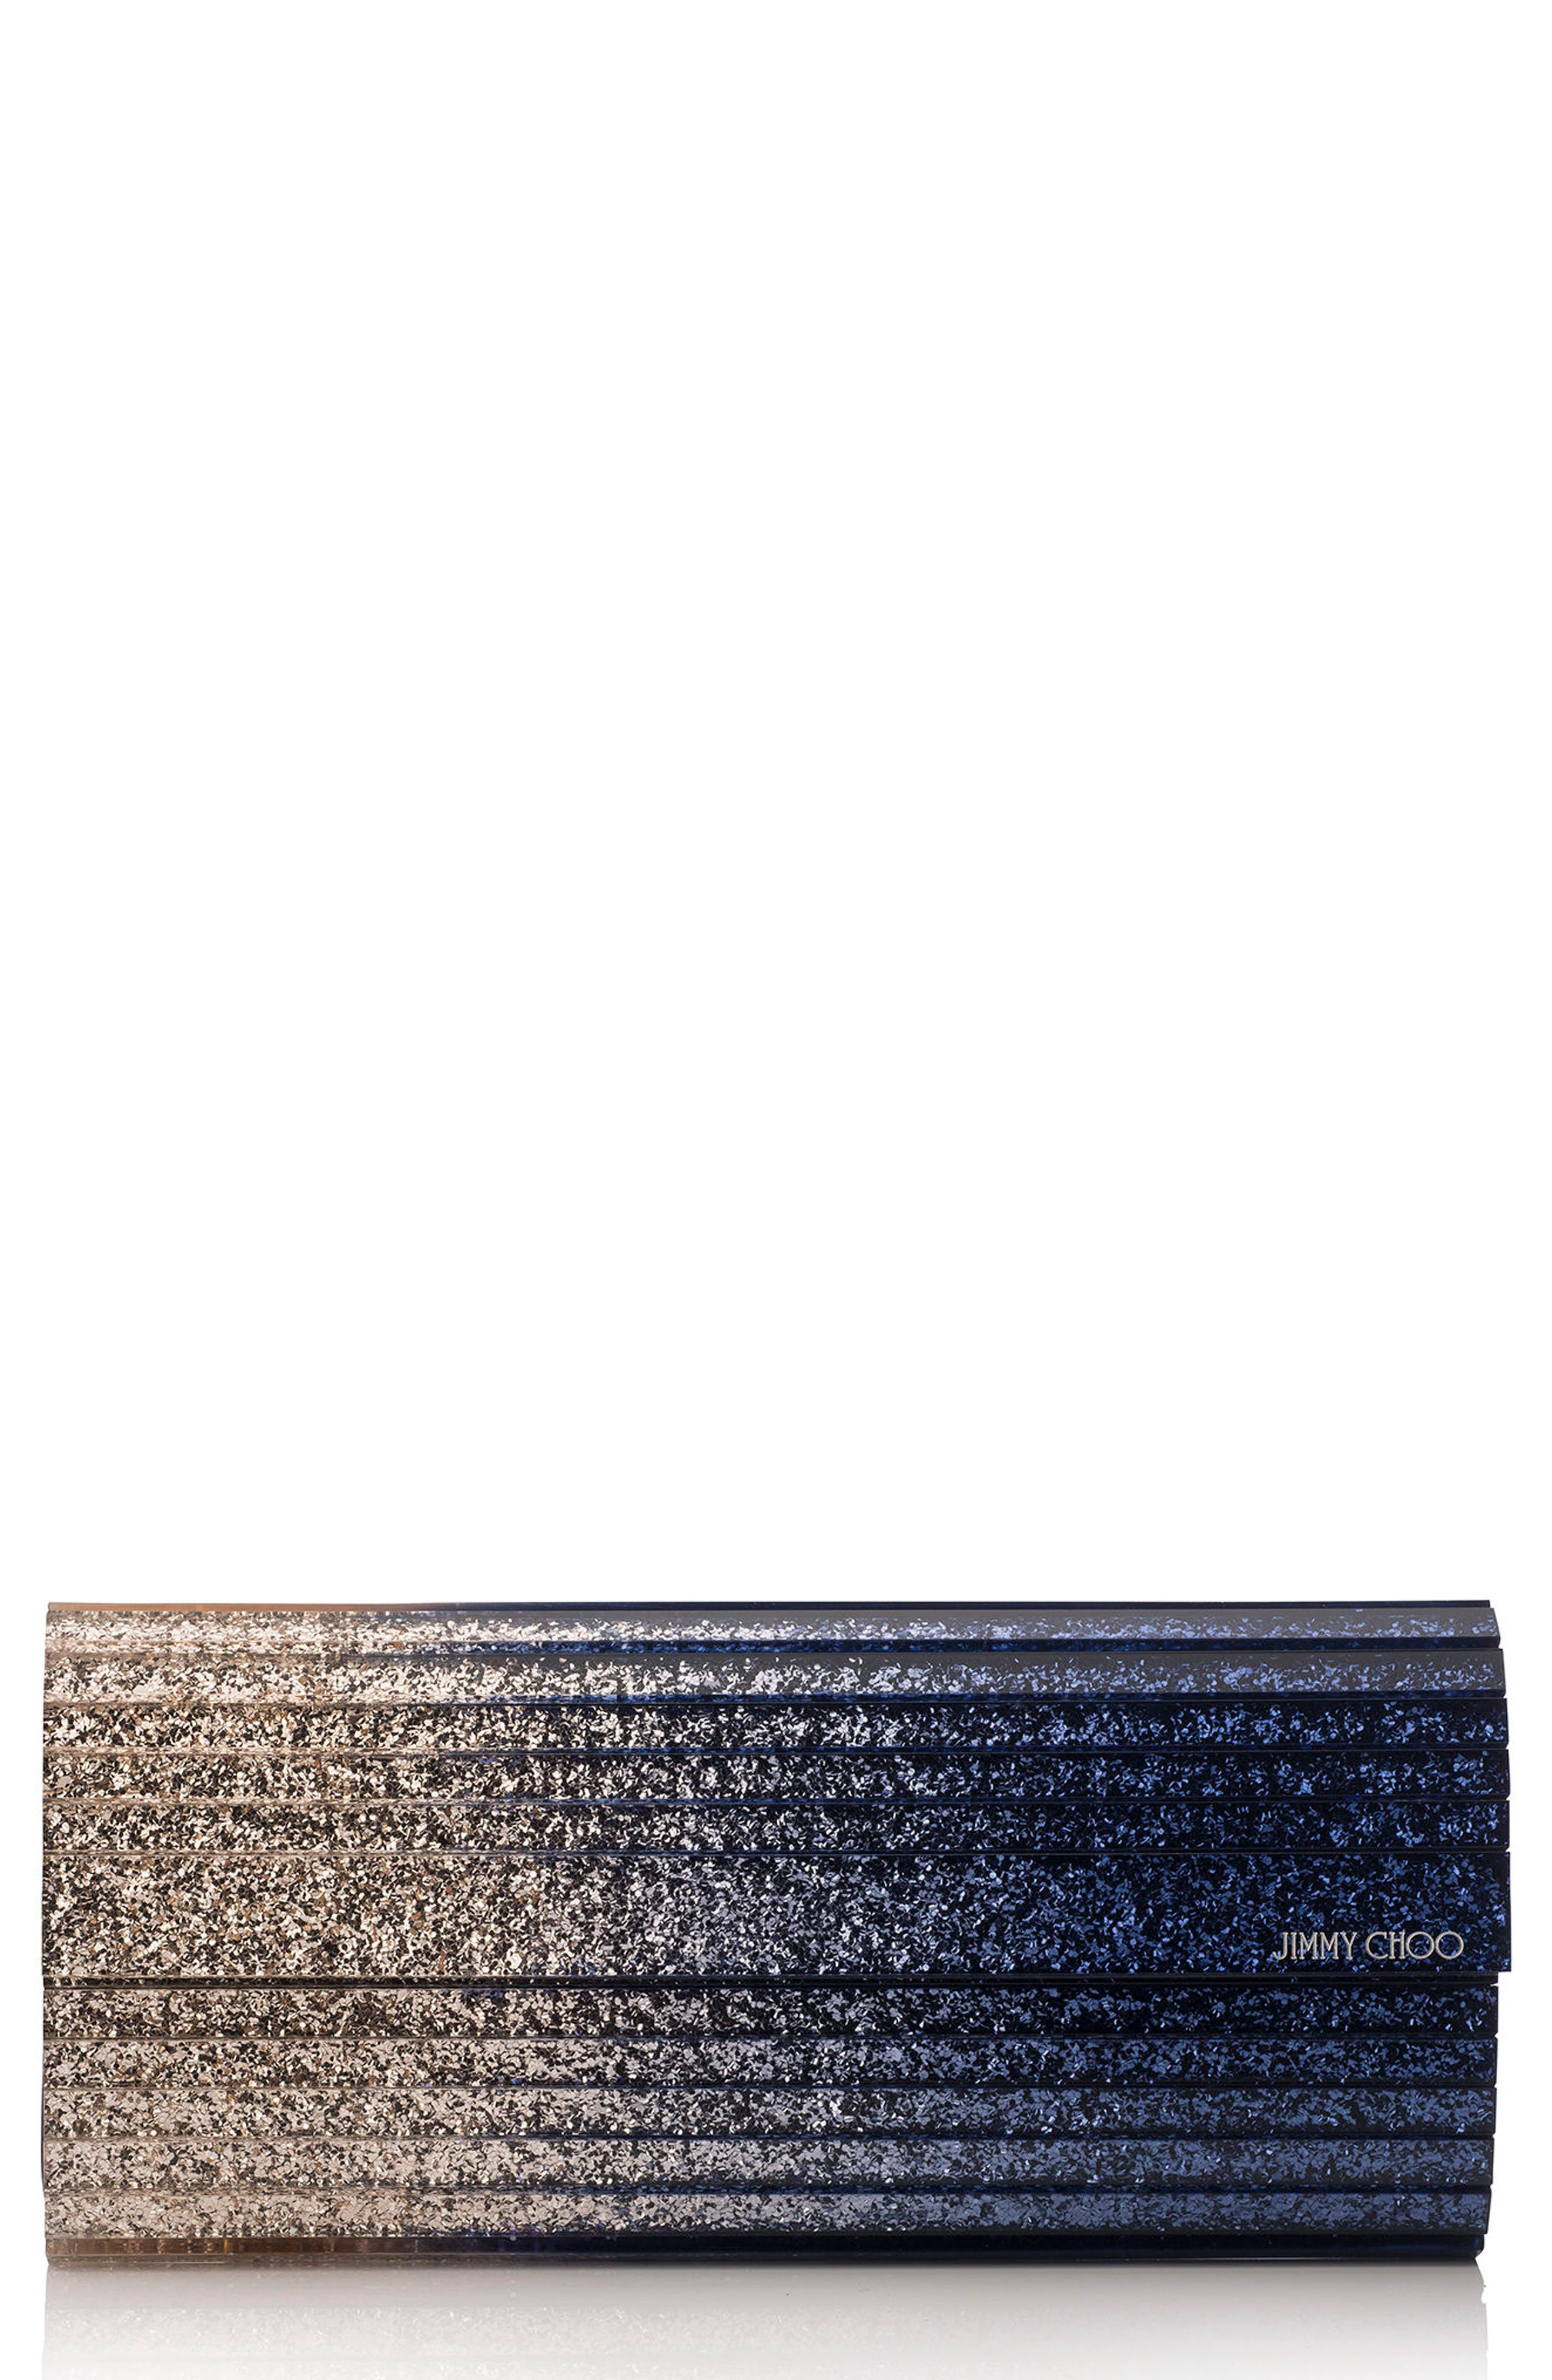 'Sweetie' Clutch,                             Main thumbnail 1, color,                             041